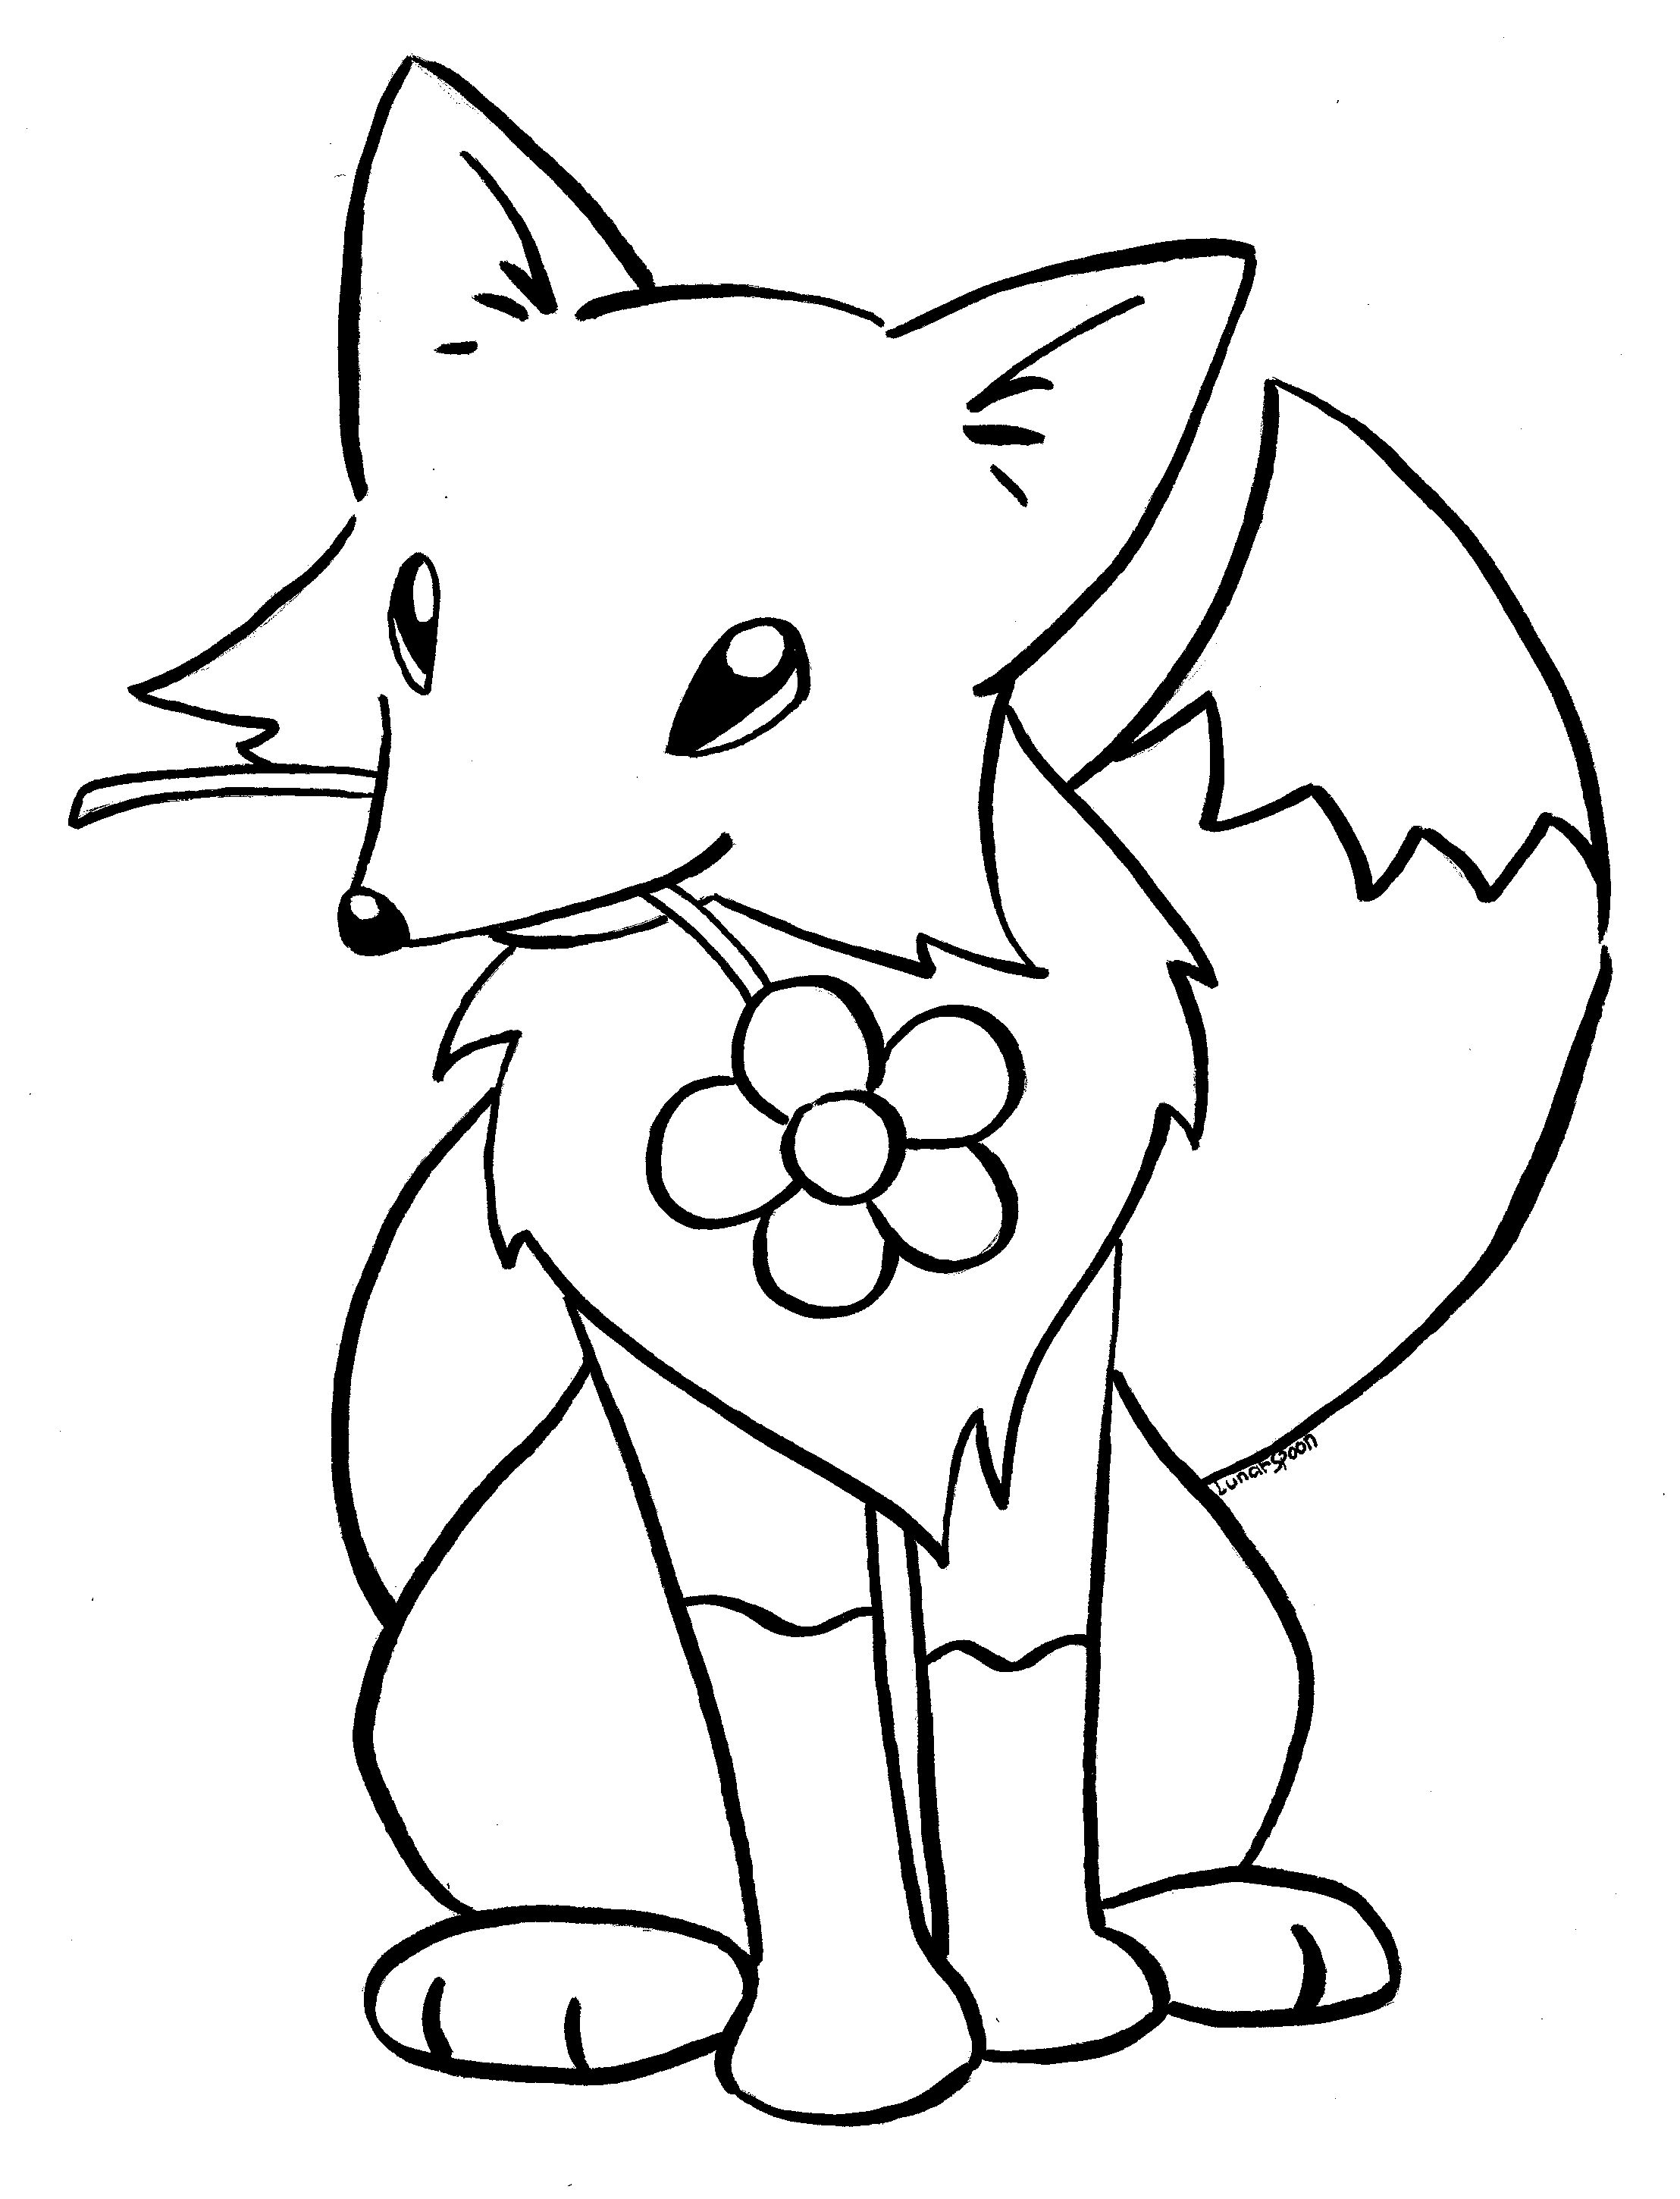 2216x2900 Awesome Cartoon Fox Coloring Pages Gallery Printable Coloring Sheet